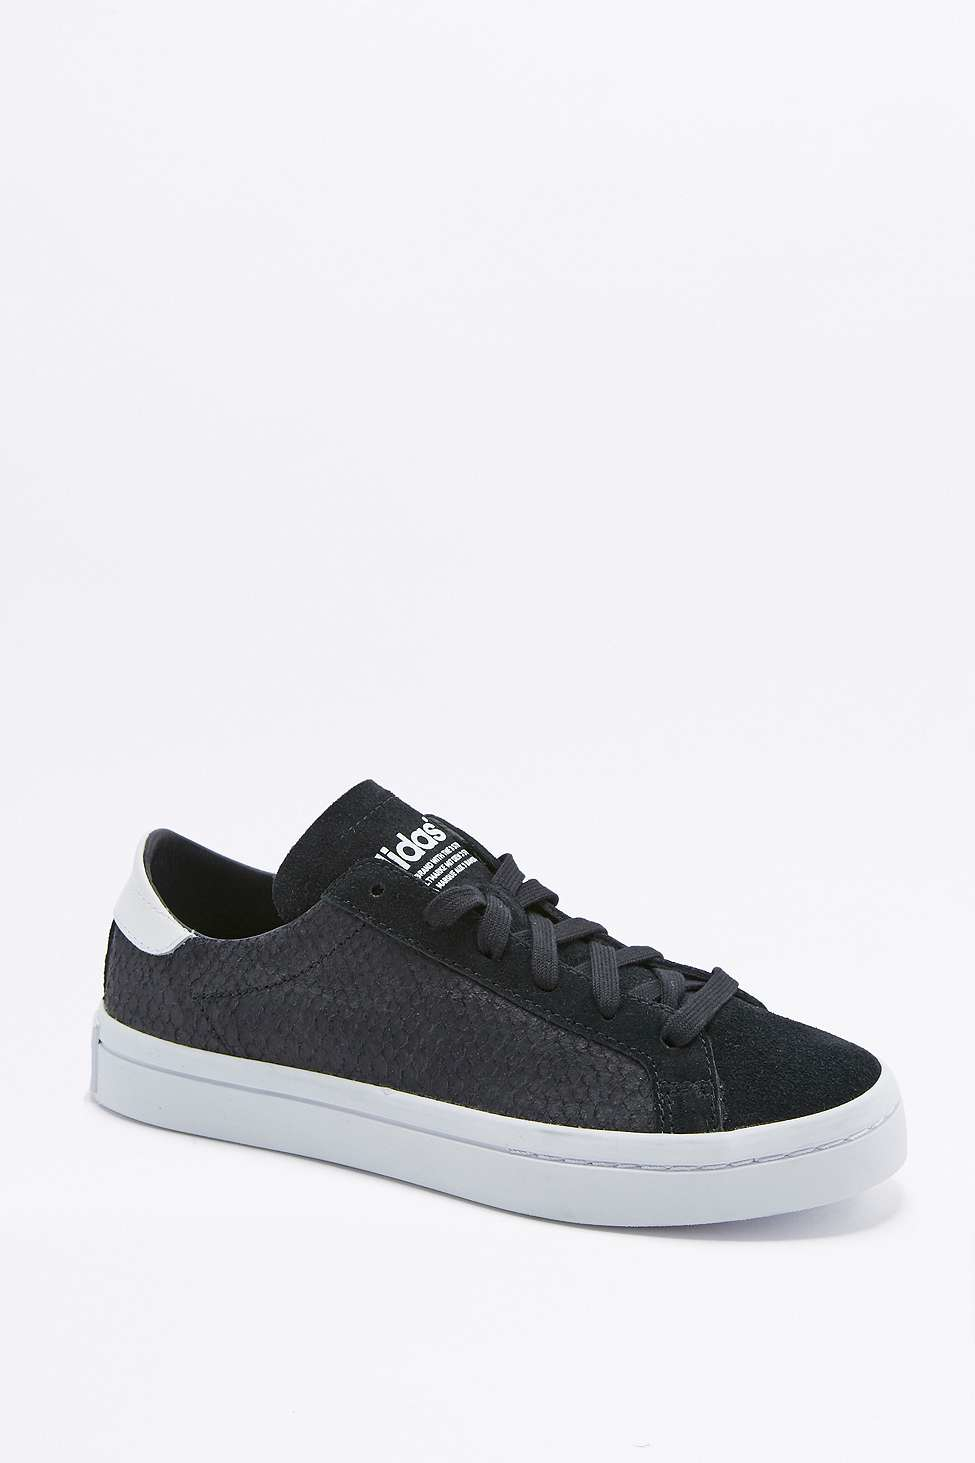 adidas Originals Court Vantage Black Snake Trainers in Black - Lyst 40ef1443c